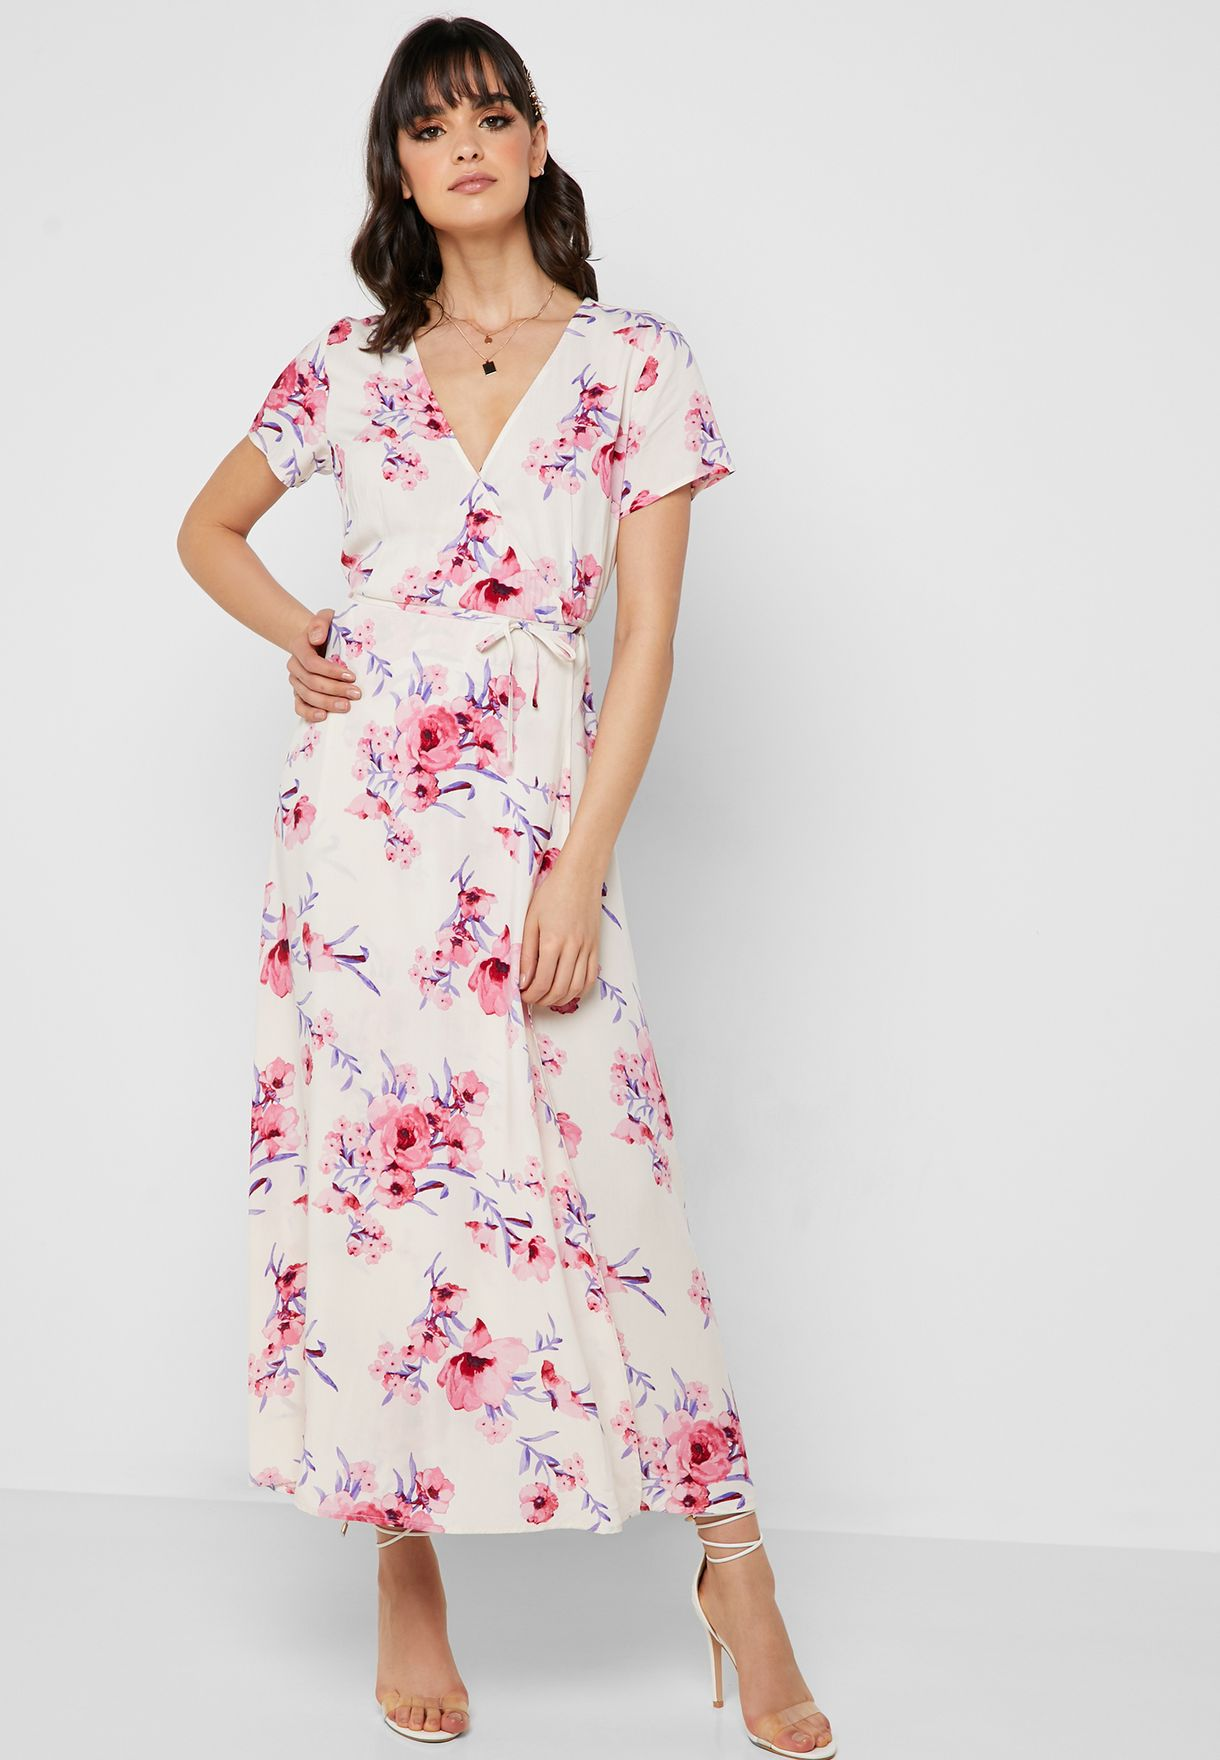 c5089d94be Shop Forever 21 prints Floral Print Wrap Dress 275615 for Women in ...